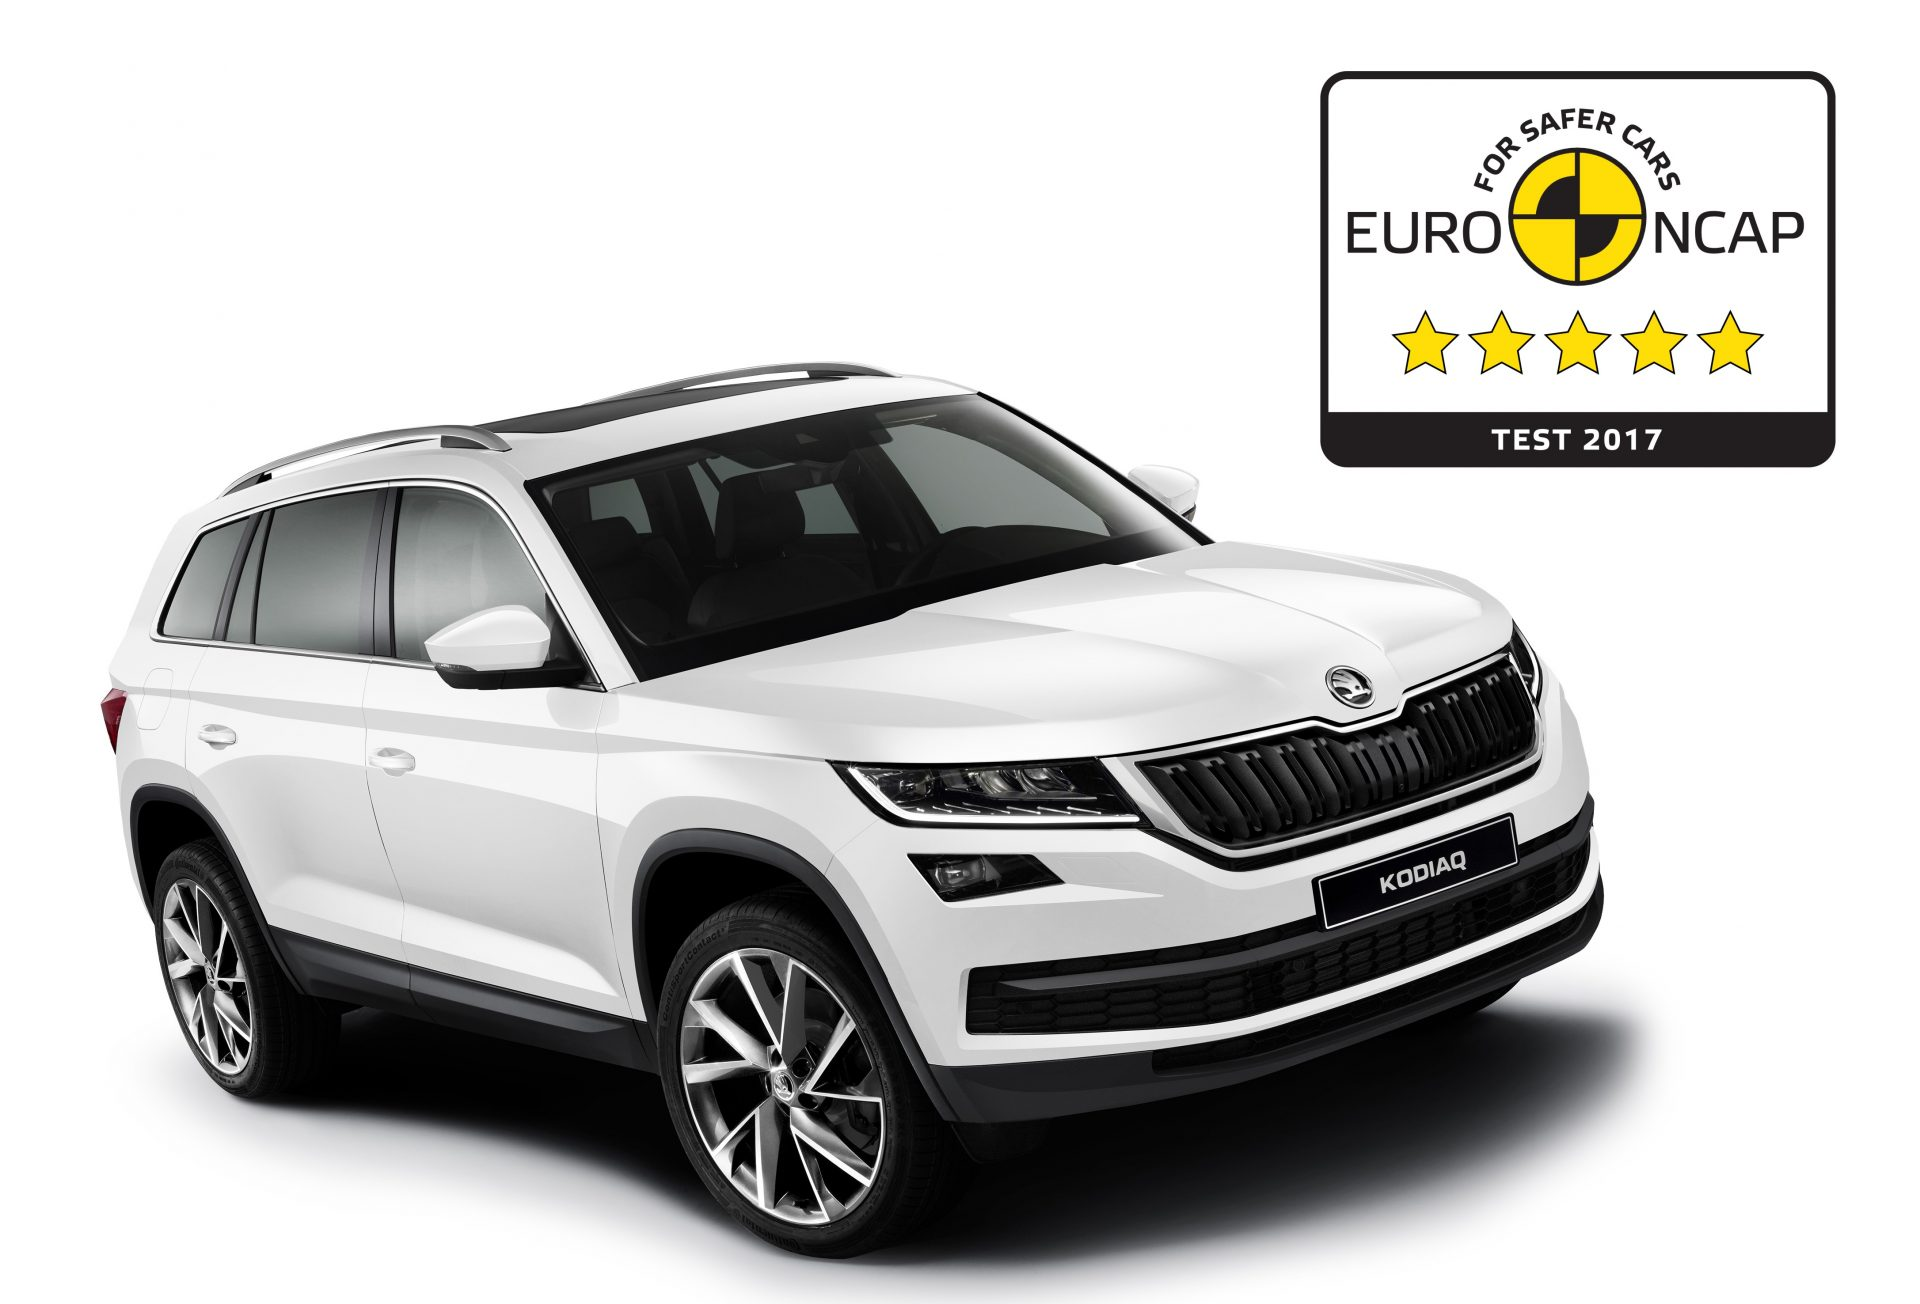 ŠKODA KODIAQ receives 5-Star Euro NCAP overall safety rating